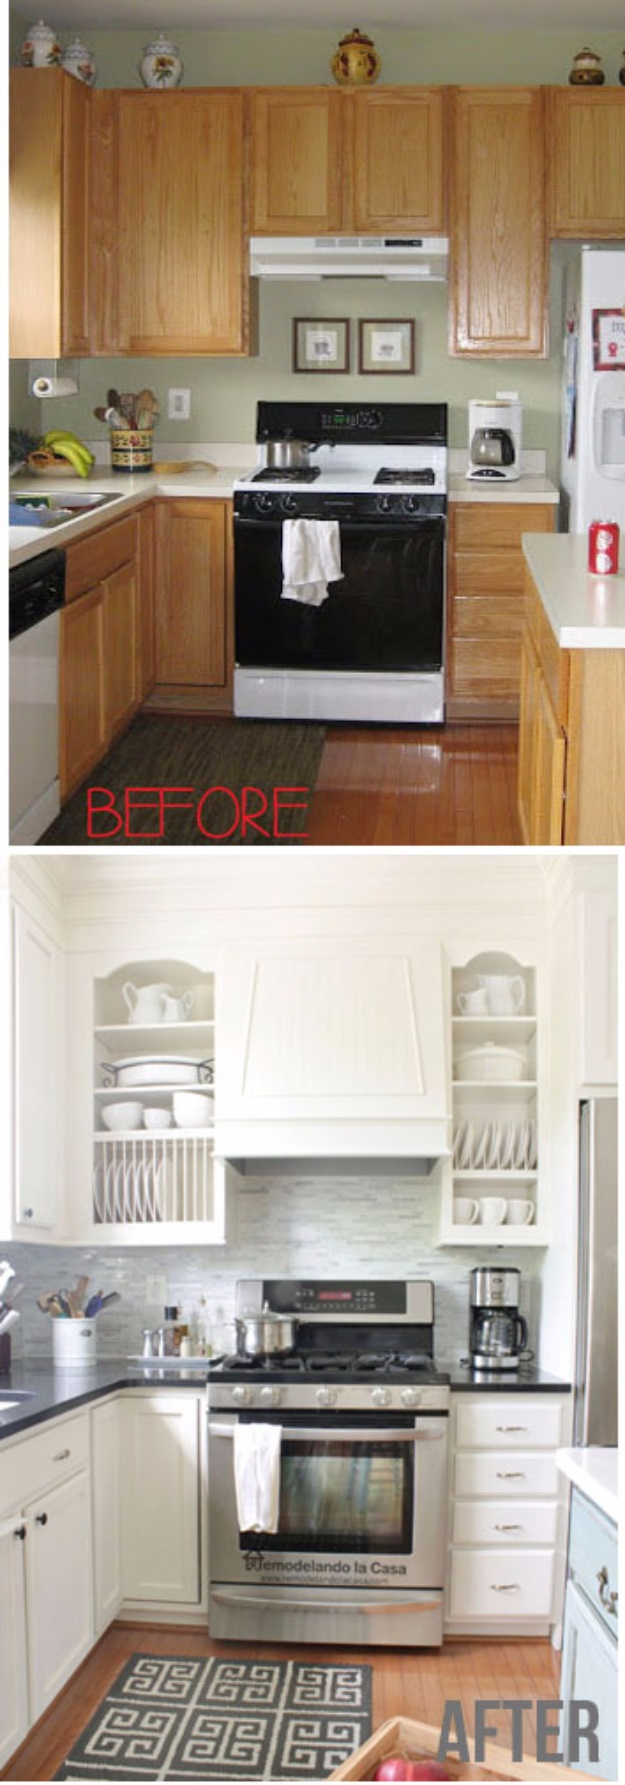 10 easy diy ideas to upgrade your kitchen now decorextra - Affordable diy home makeovers that you should consider ...